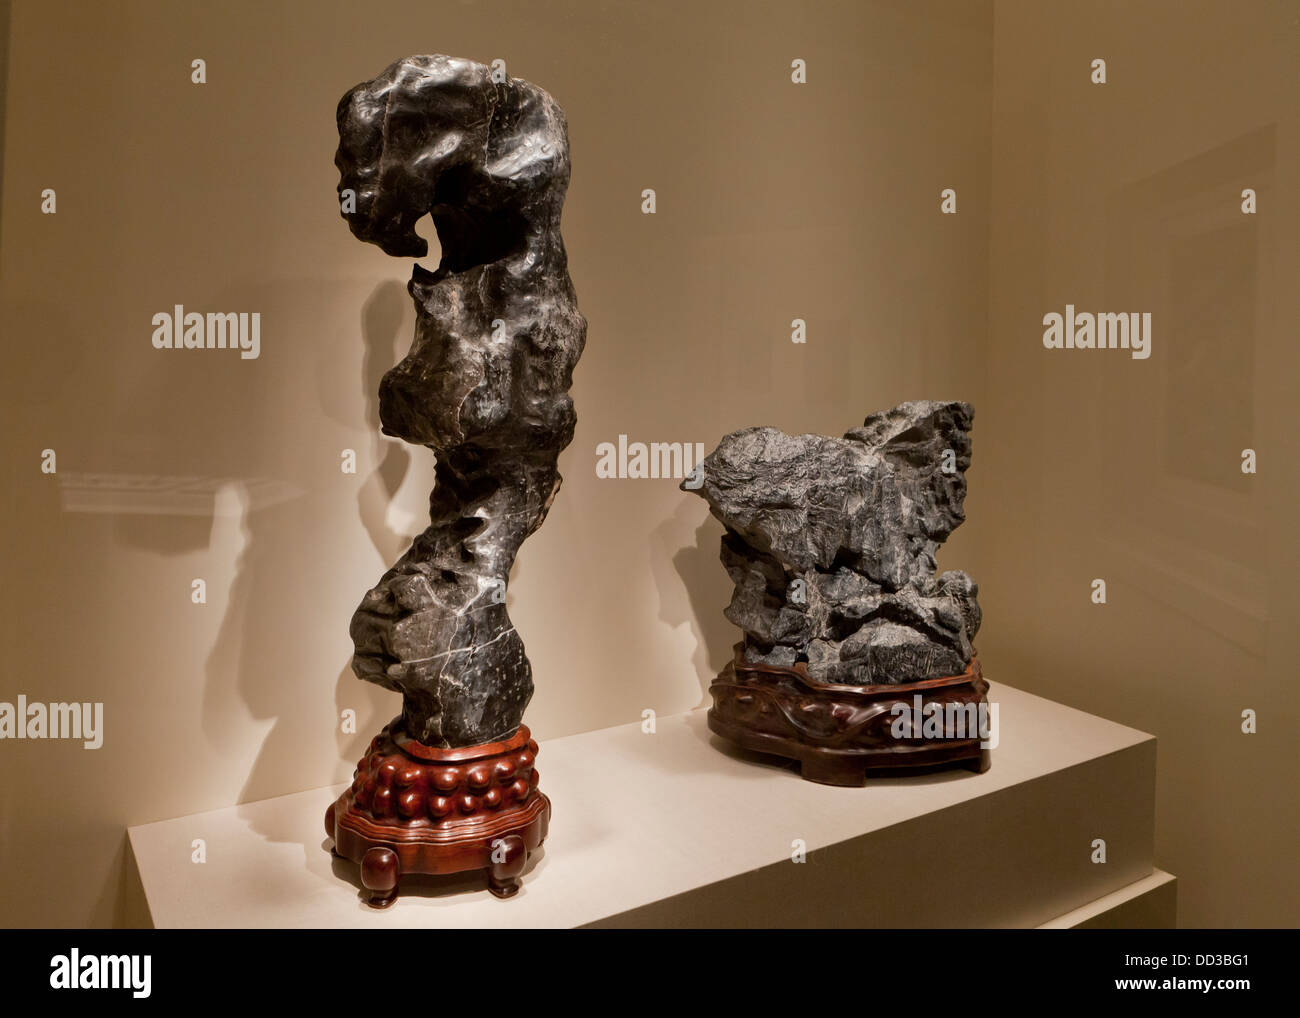 Scholar's Rocks - China, 17th century - Stock Image